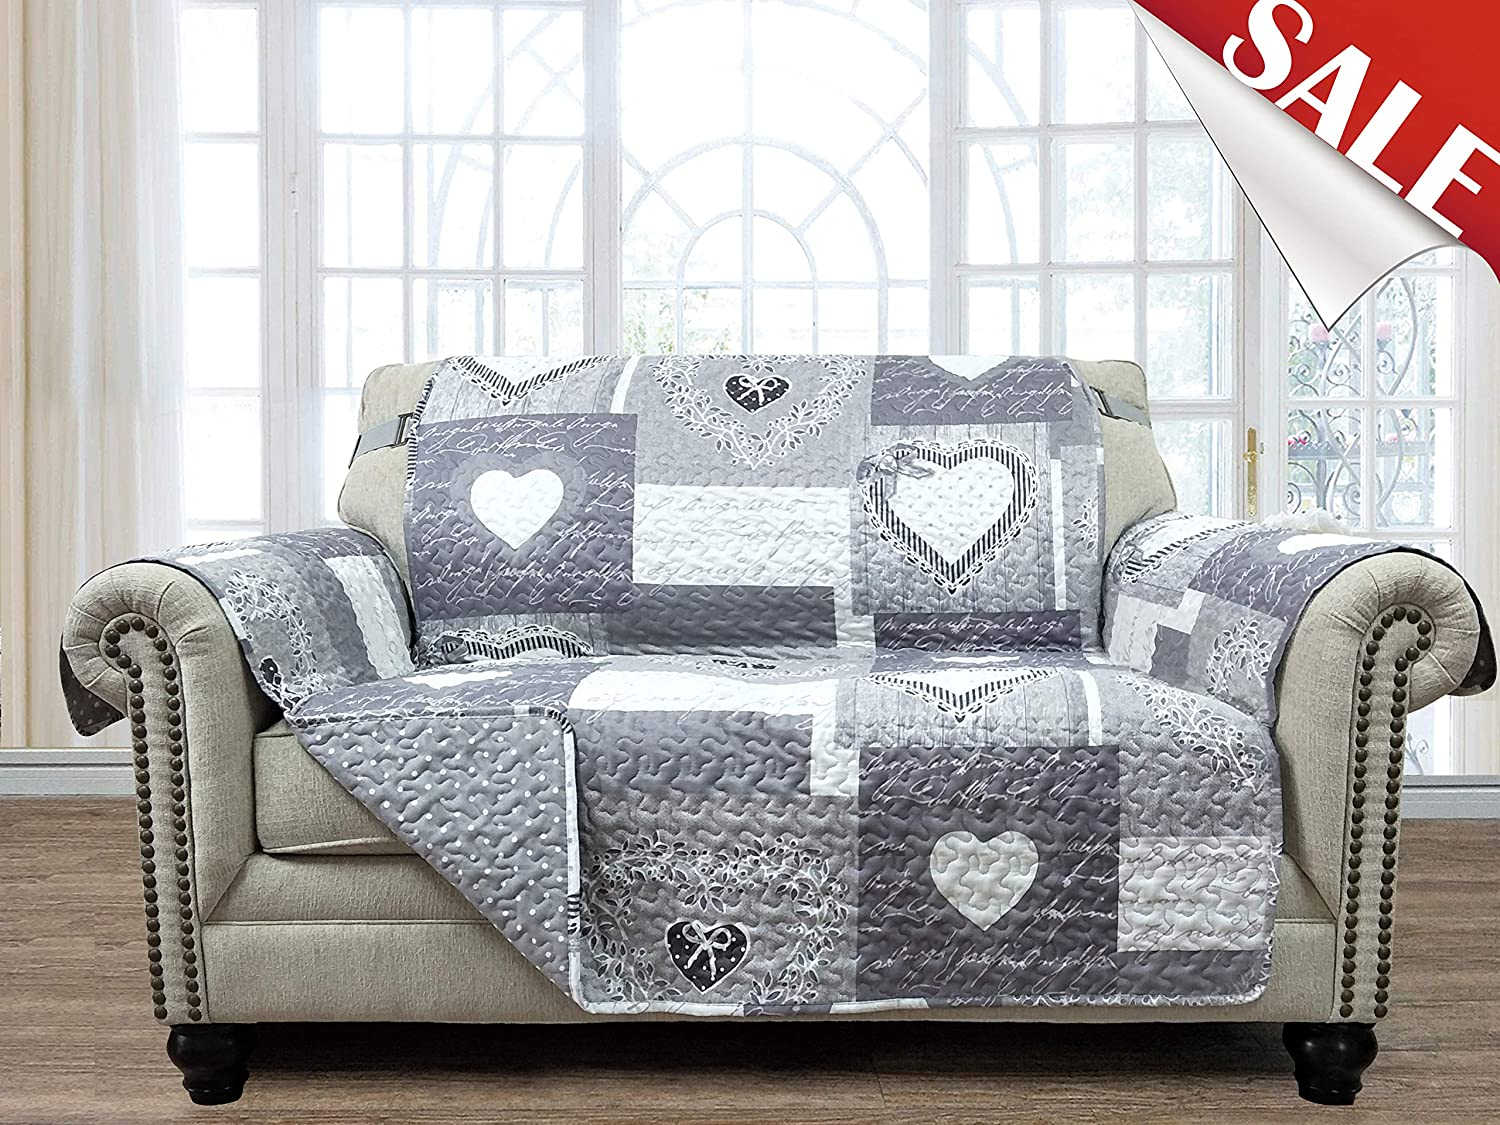 Patchwork Sofa Loveseat Protector 54 Inch Pet Proof Funiture Cover Heart Love Print Reversible Quilted Scroll Soft Layers/, Enhanced Strap, Machine Wash Arm Chair Slipcover Not Leather, Grey/White